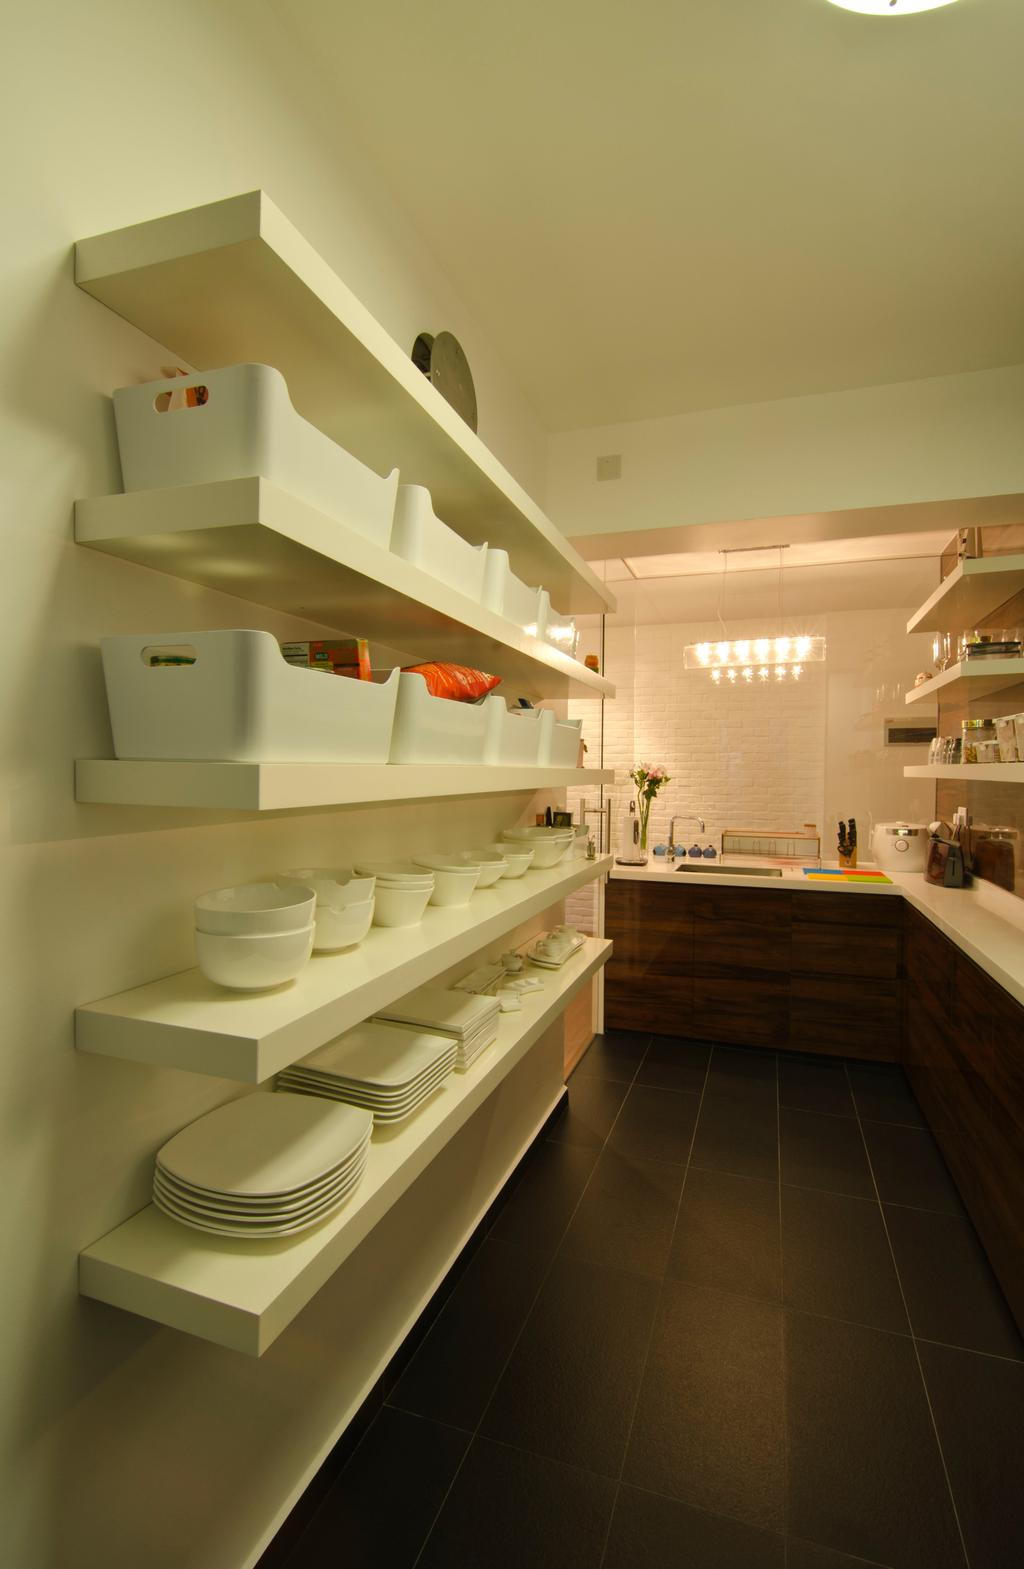 Contemporary, HDB, Kitchen, 27 Ghim Moh Link, Interior Designer, Fifth Avenue Interior, Brown Cabinets, Wall Mounted Shelves, Shelves, White Shelves, Pendant Lighting, Bathroom, Indoors, Interior Design, Room, Appliance, Electrical Device, Oven